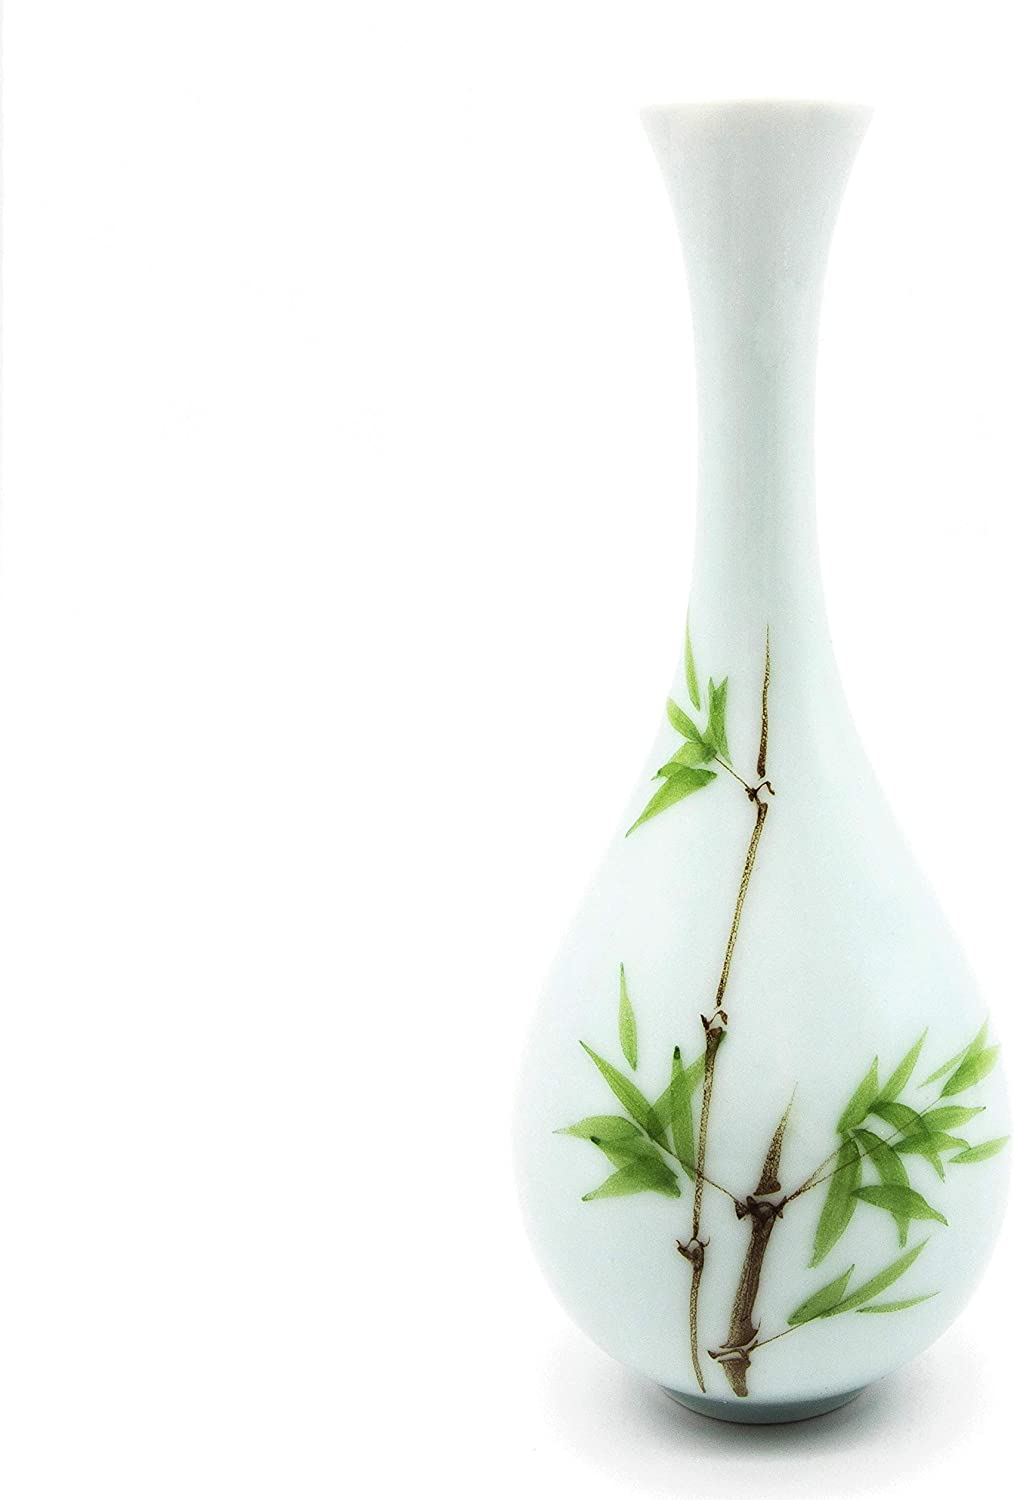 GLFY Flower Ceramic Vase Decorative Centerpiece for Home or Wedding,Home Decor Vase Table Centerpieces Vase (Bamboo)